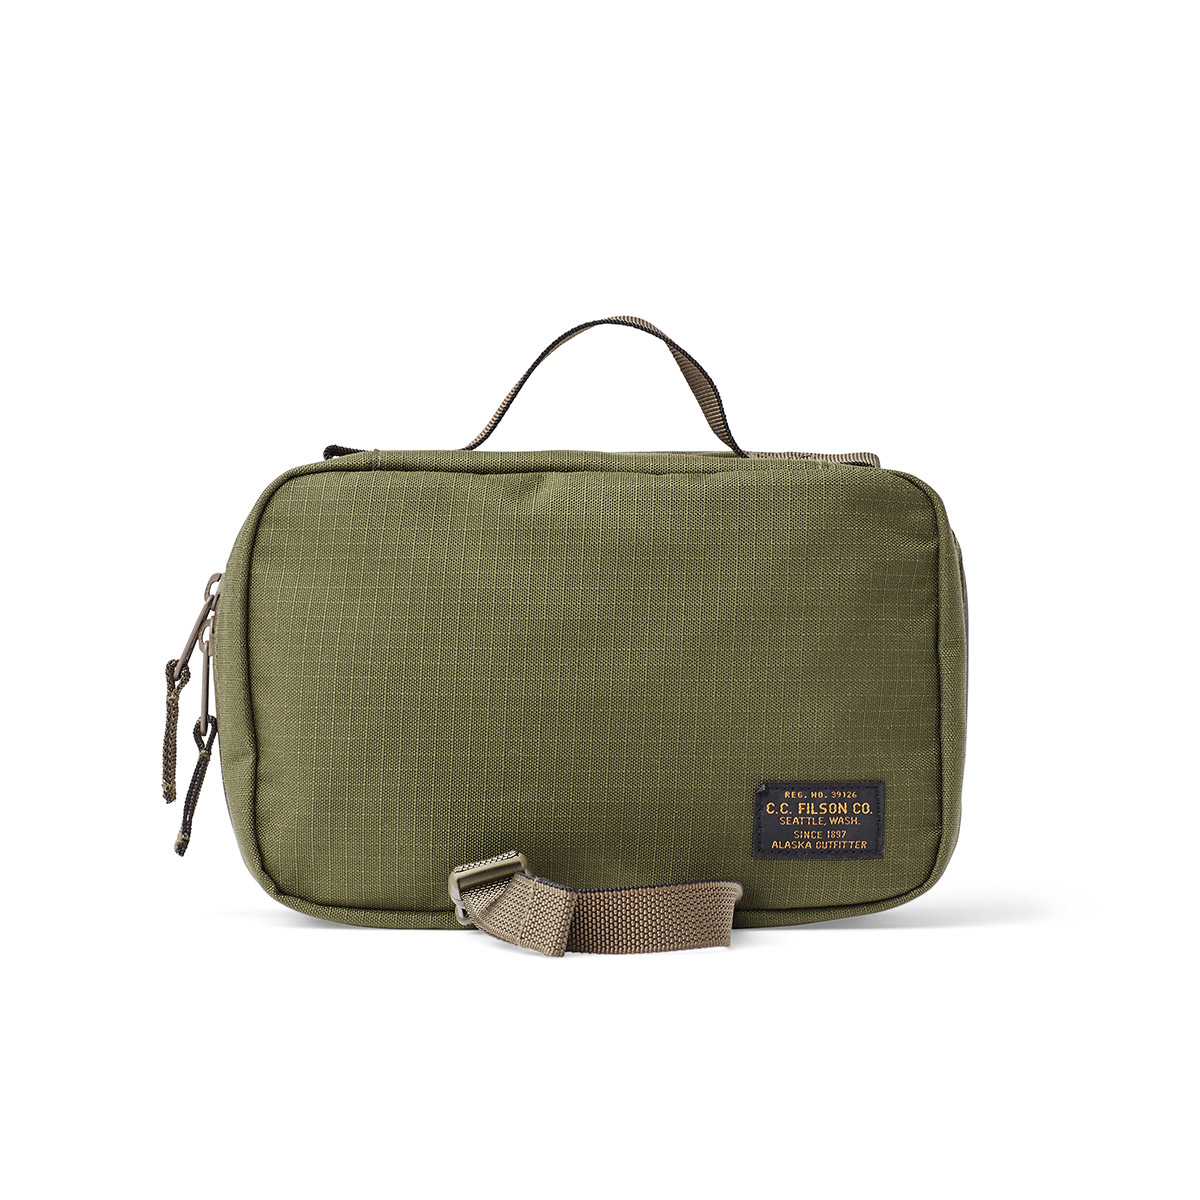 Filson Ripstop Nylon Travel Pack 20115936-Surplus Green